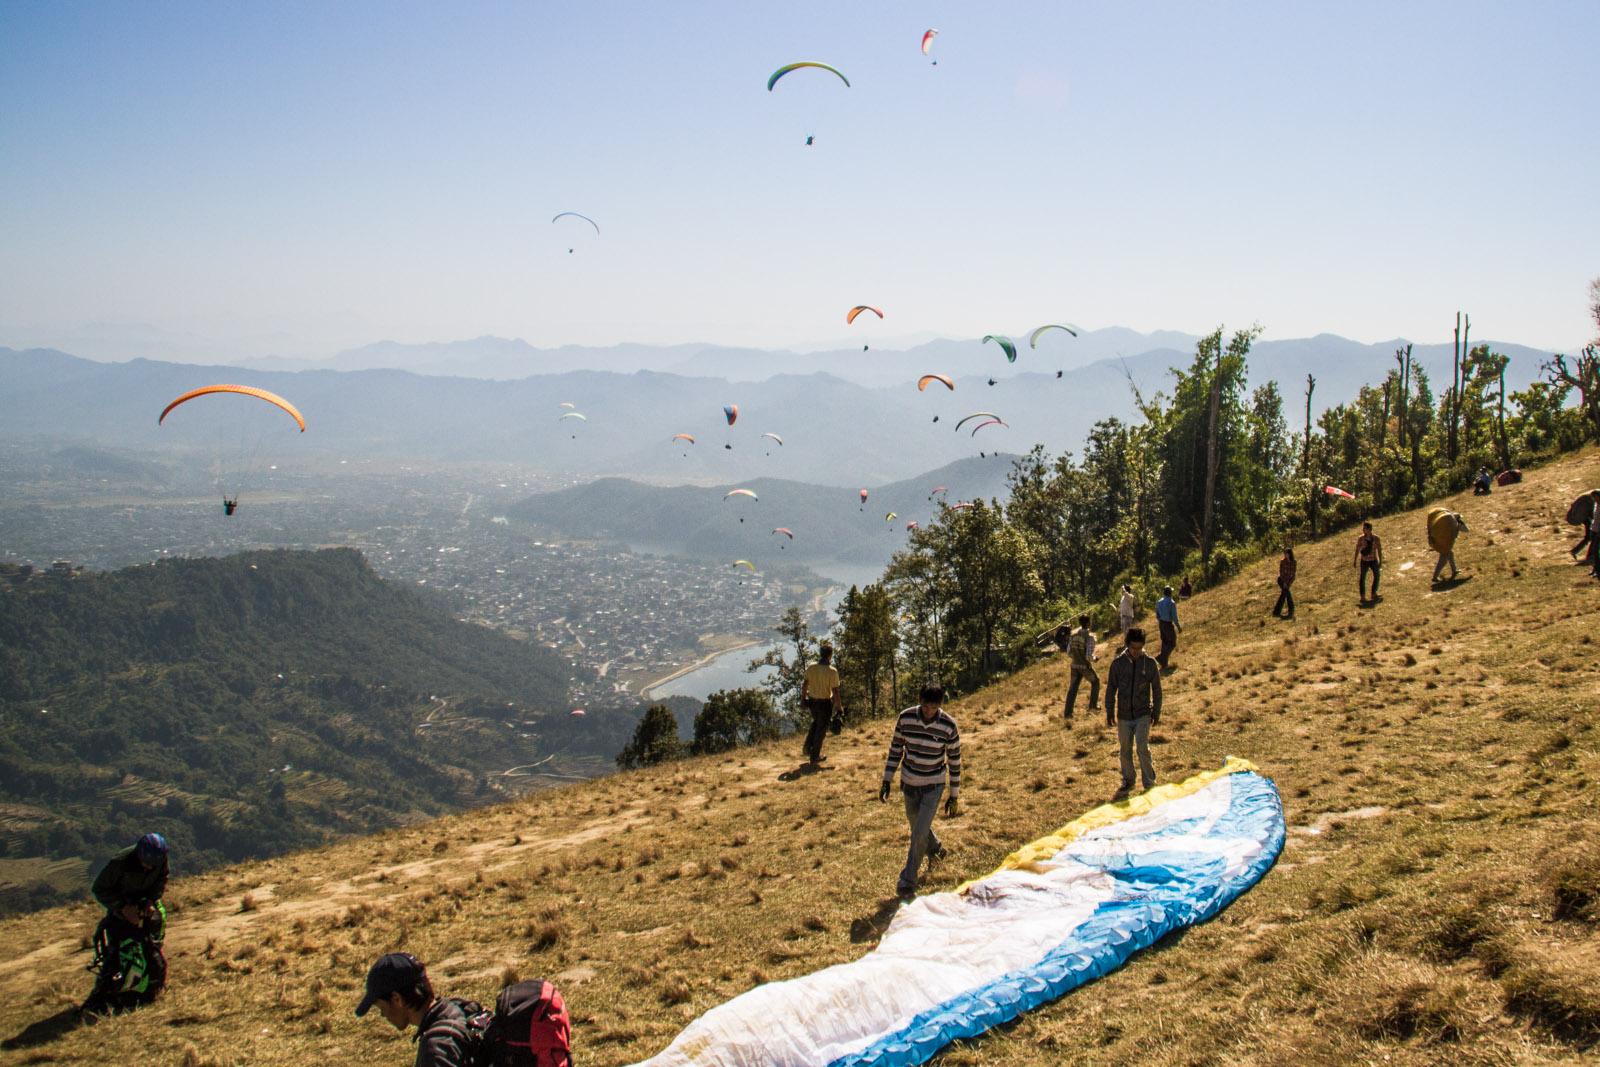 hillside launching place for paragliders